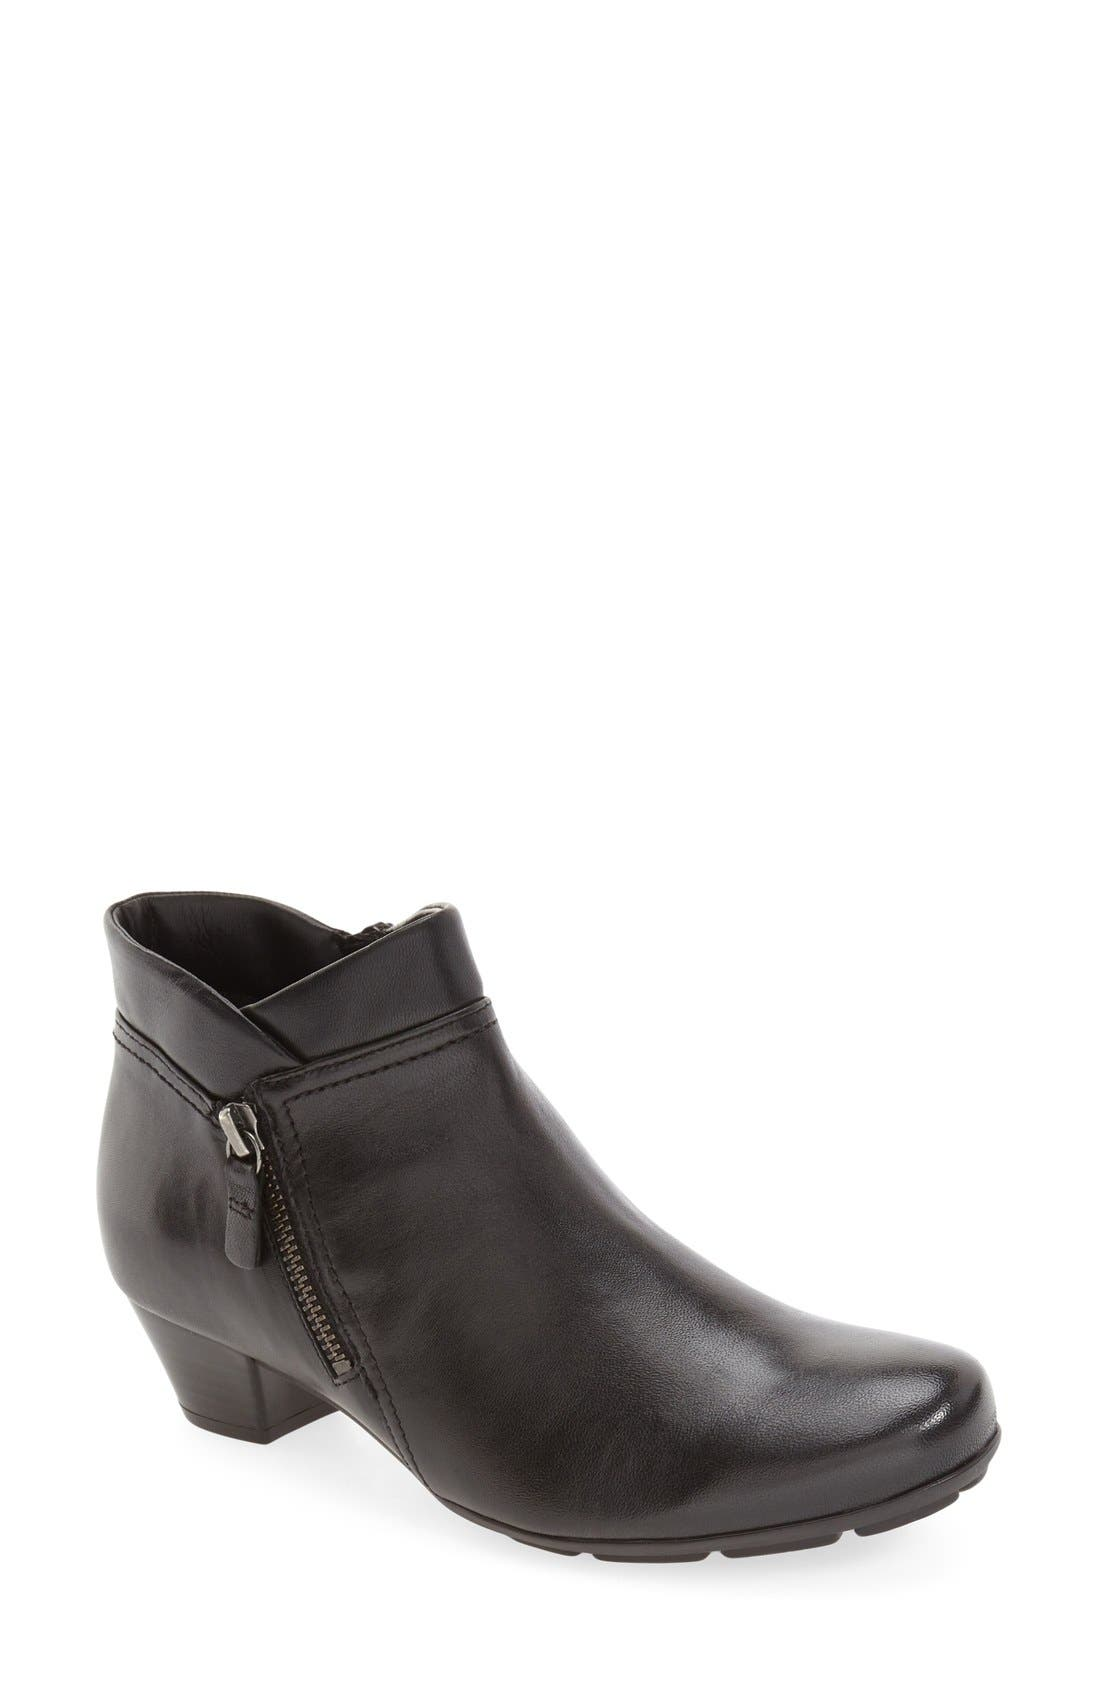 Alternate Image 1 Selected - Gabor Ankle Bootie (Women)